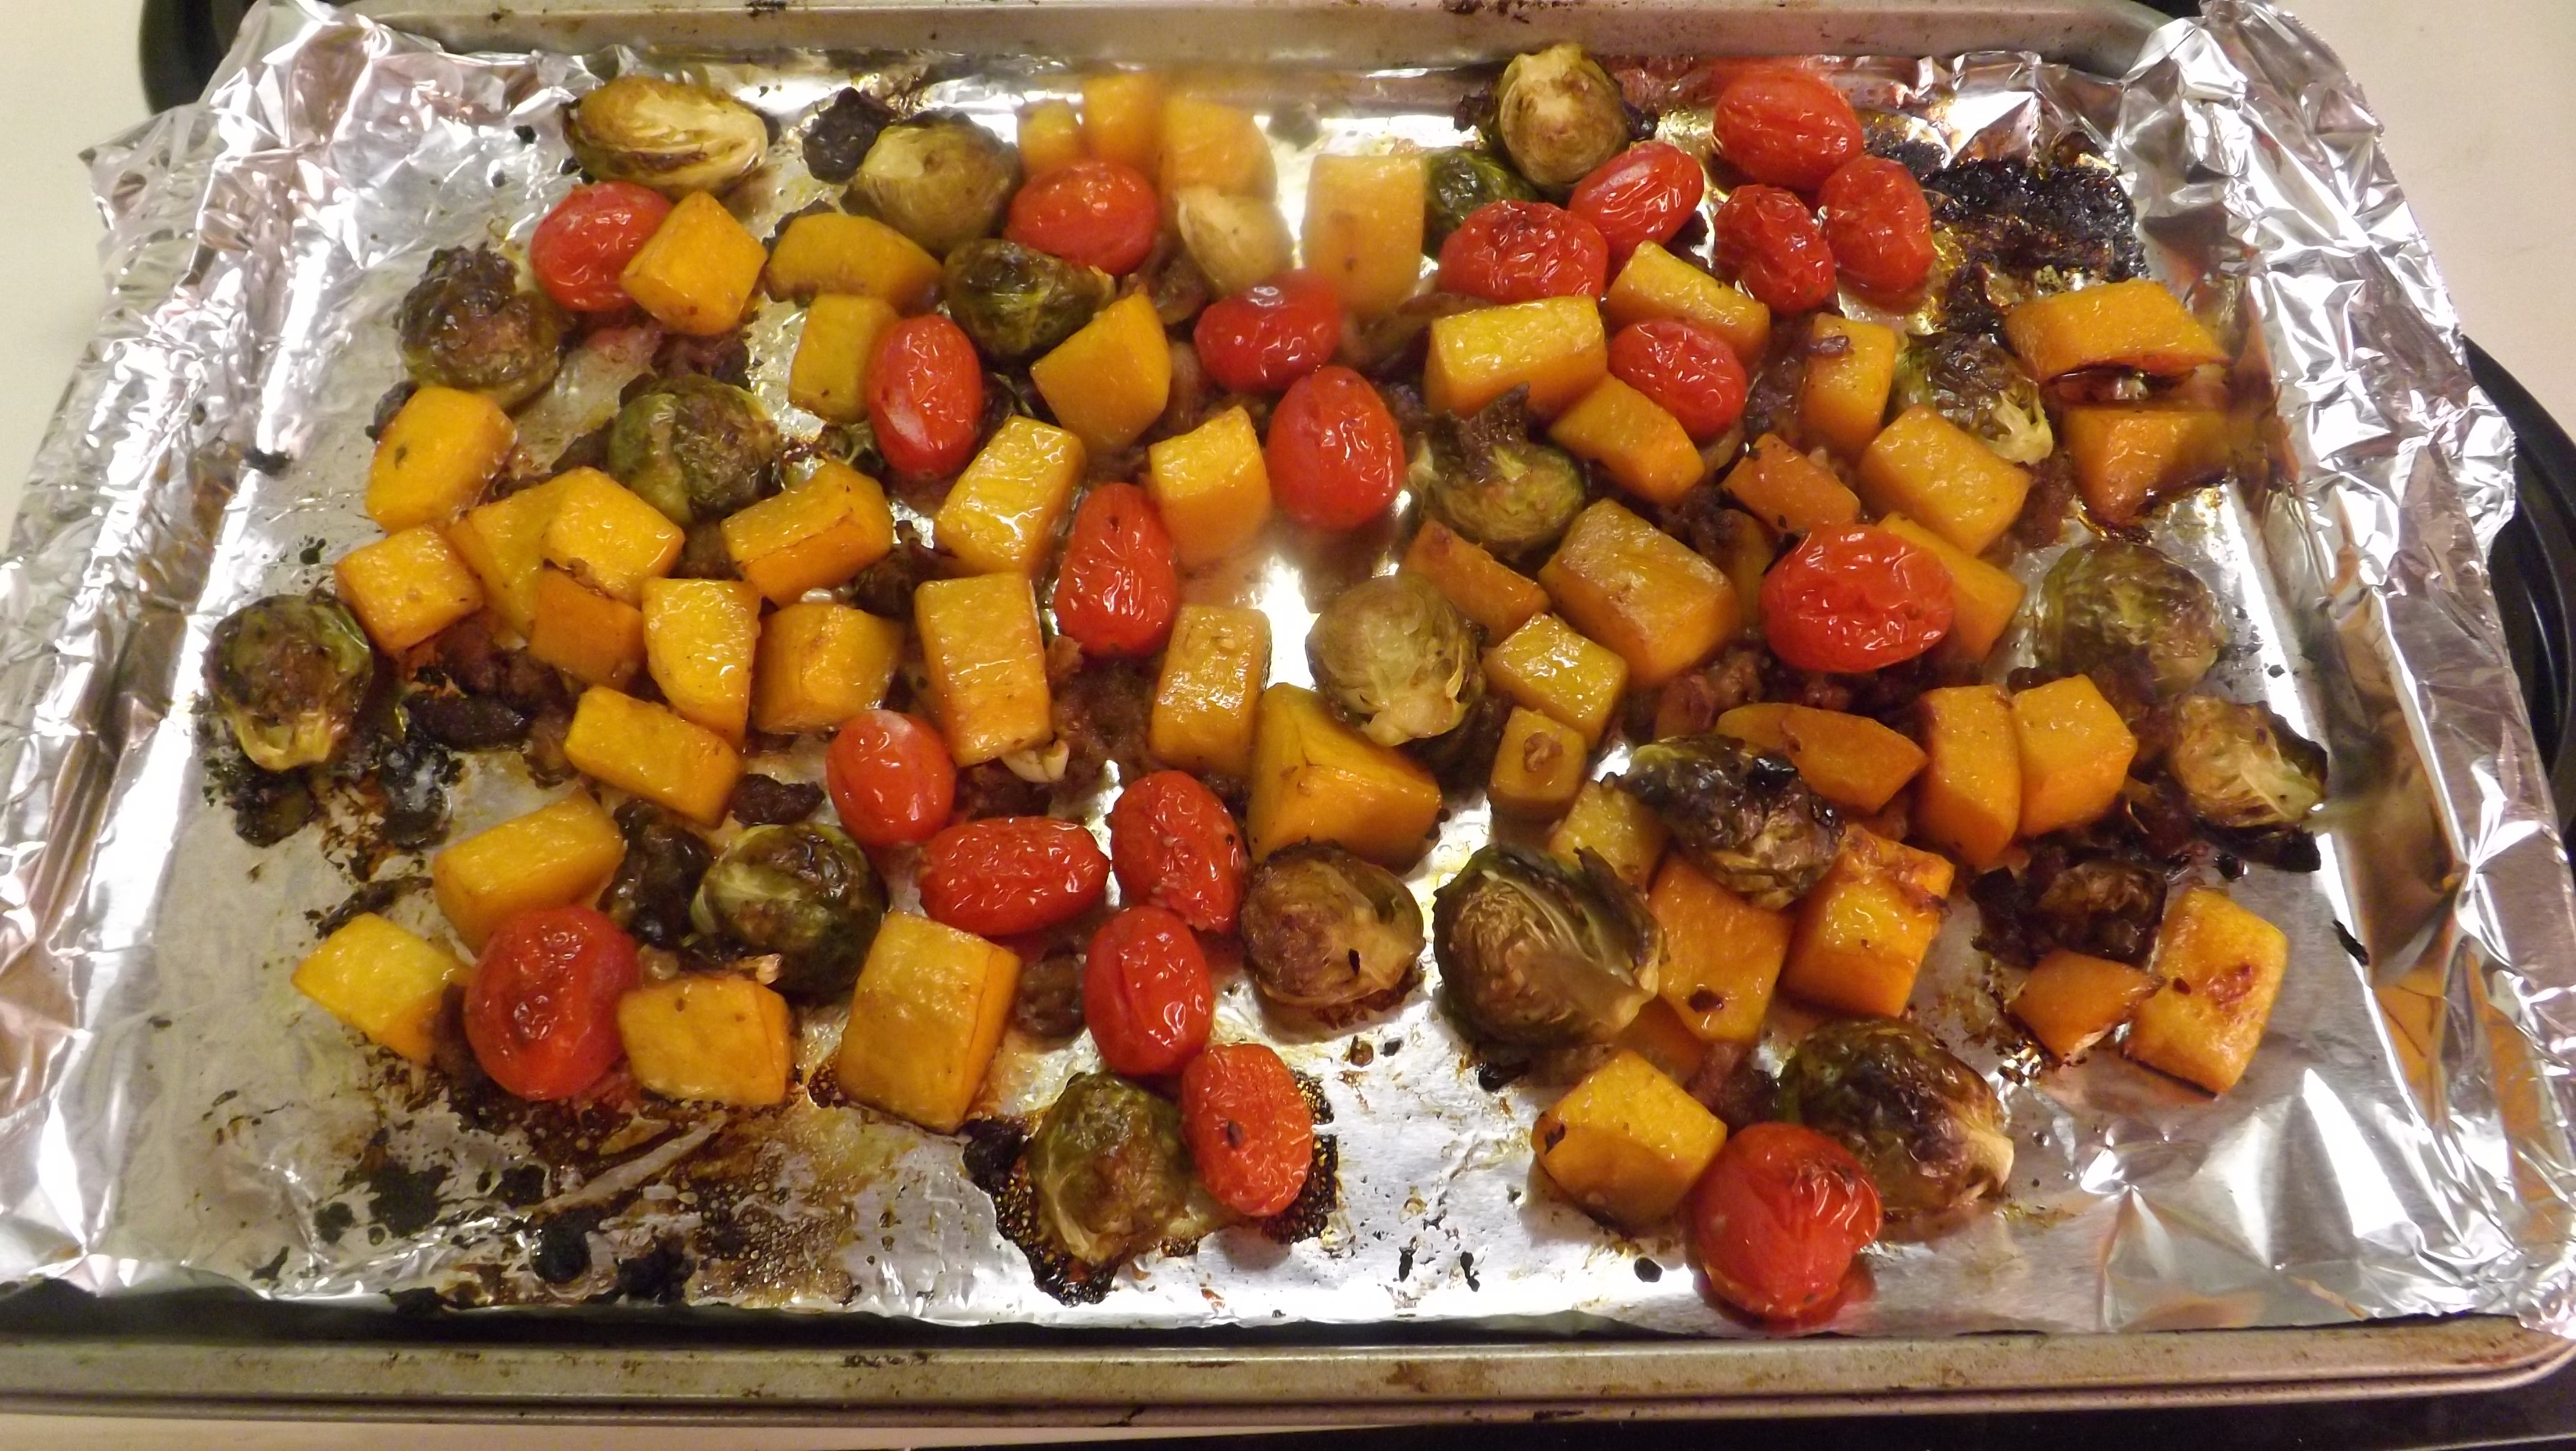 Picture of BALSAMIC ROASTED BRUSSELS SPROUTS, BUTTERNUT SQUASH & GRAPE TOMATOES